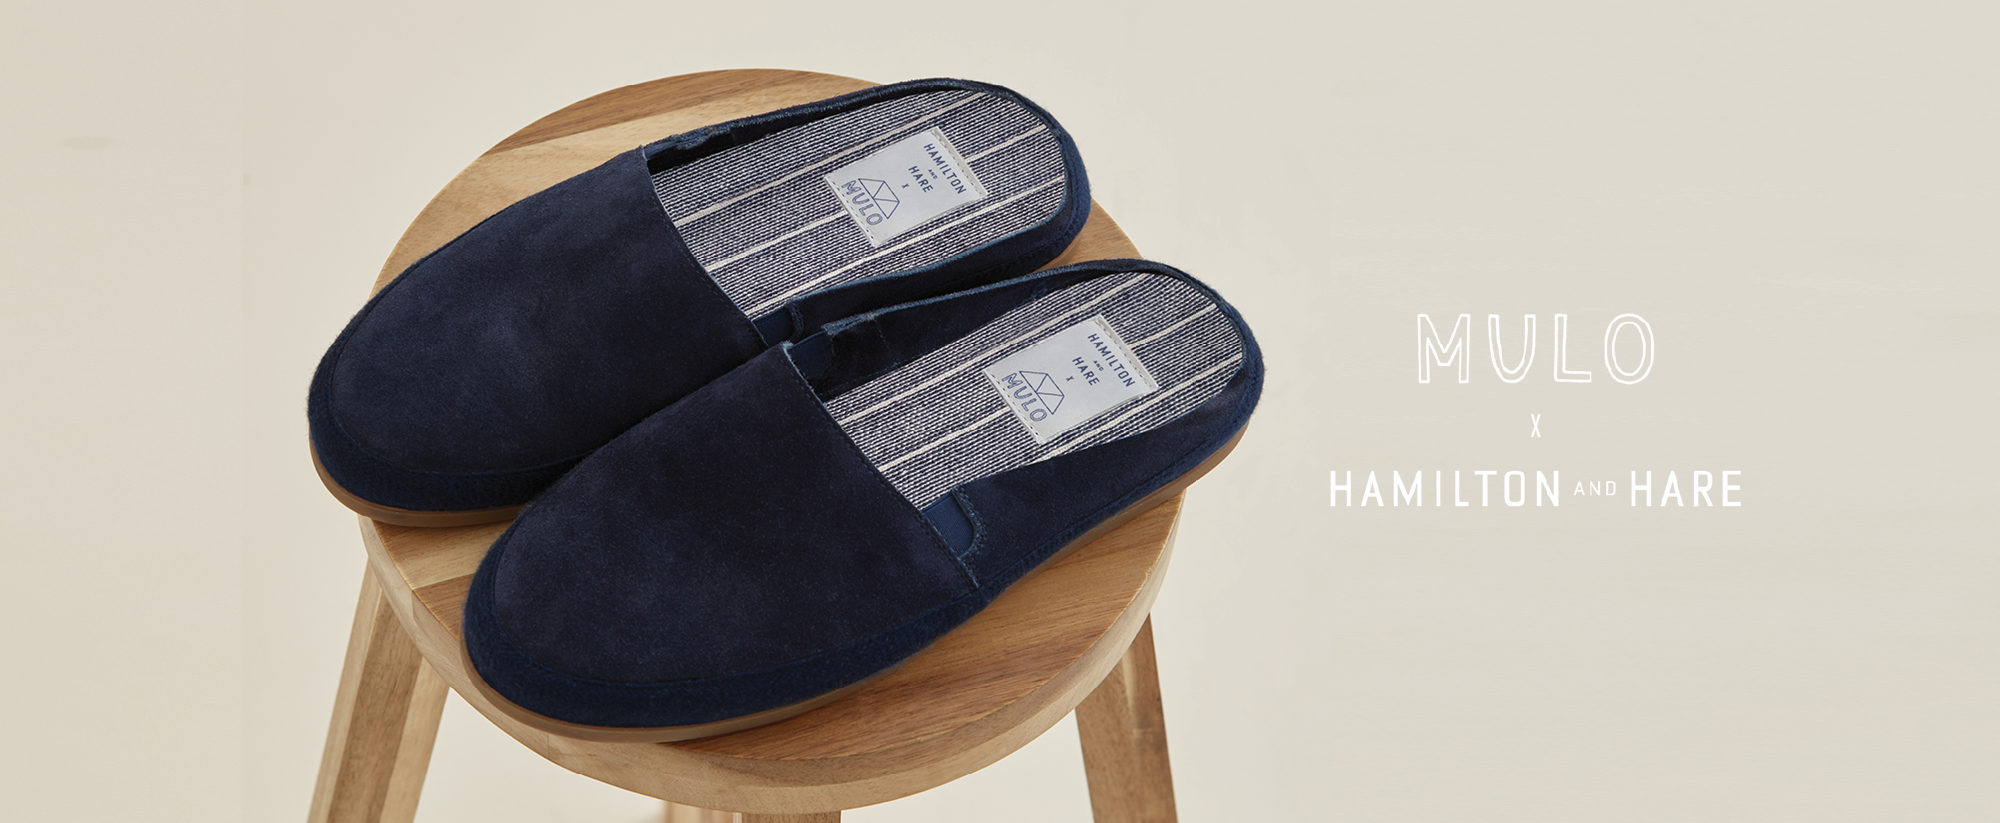 MULO shoes | MULO x Hamilton and Hare | Limited Edition